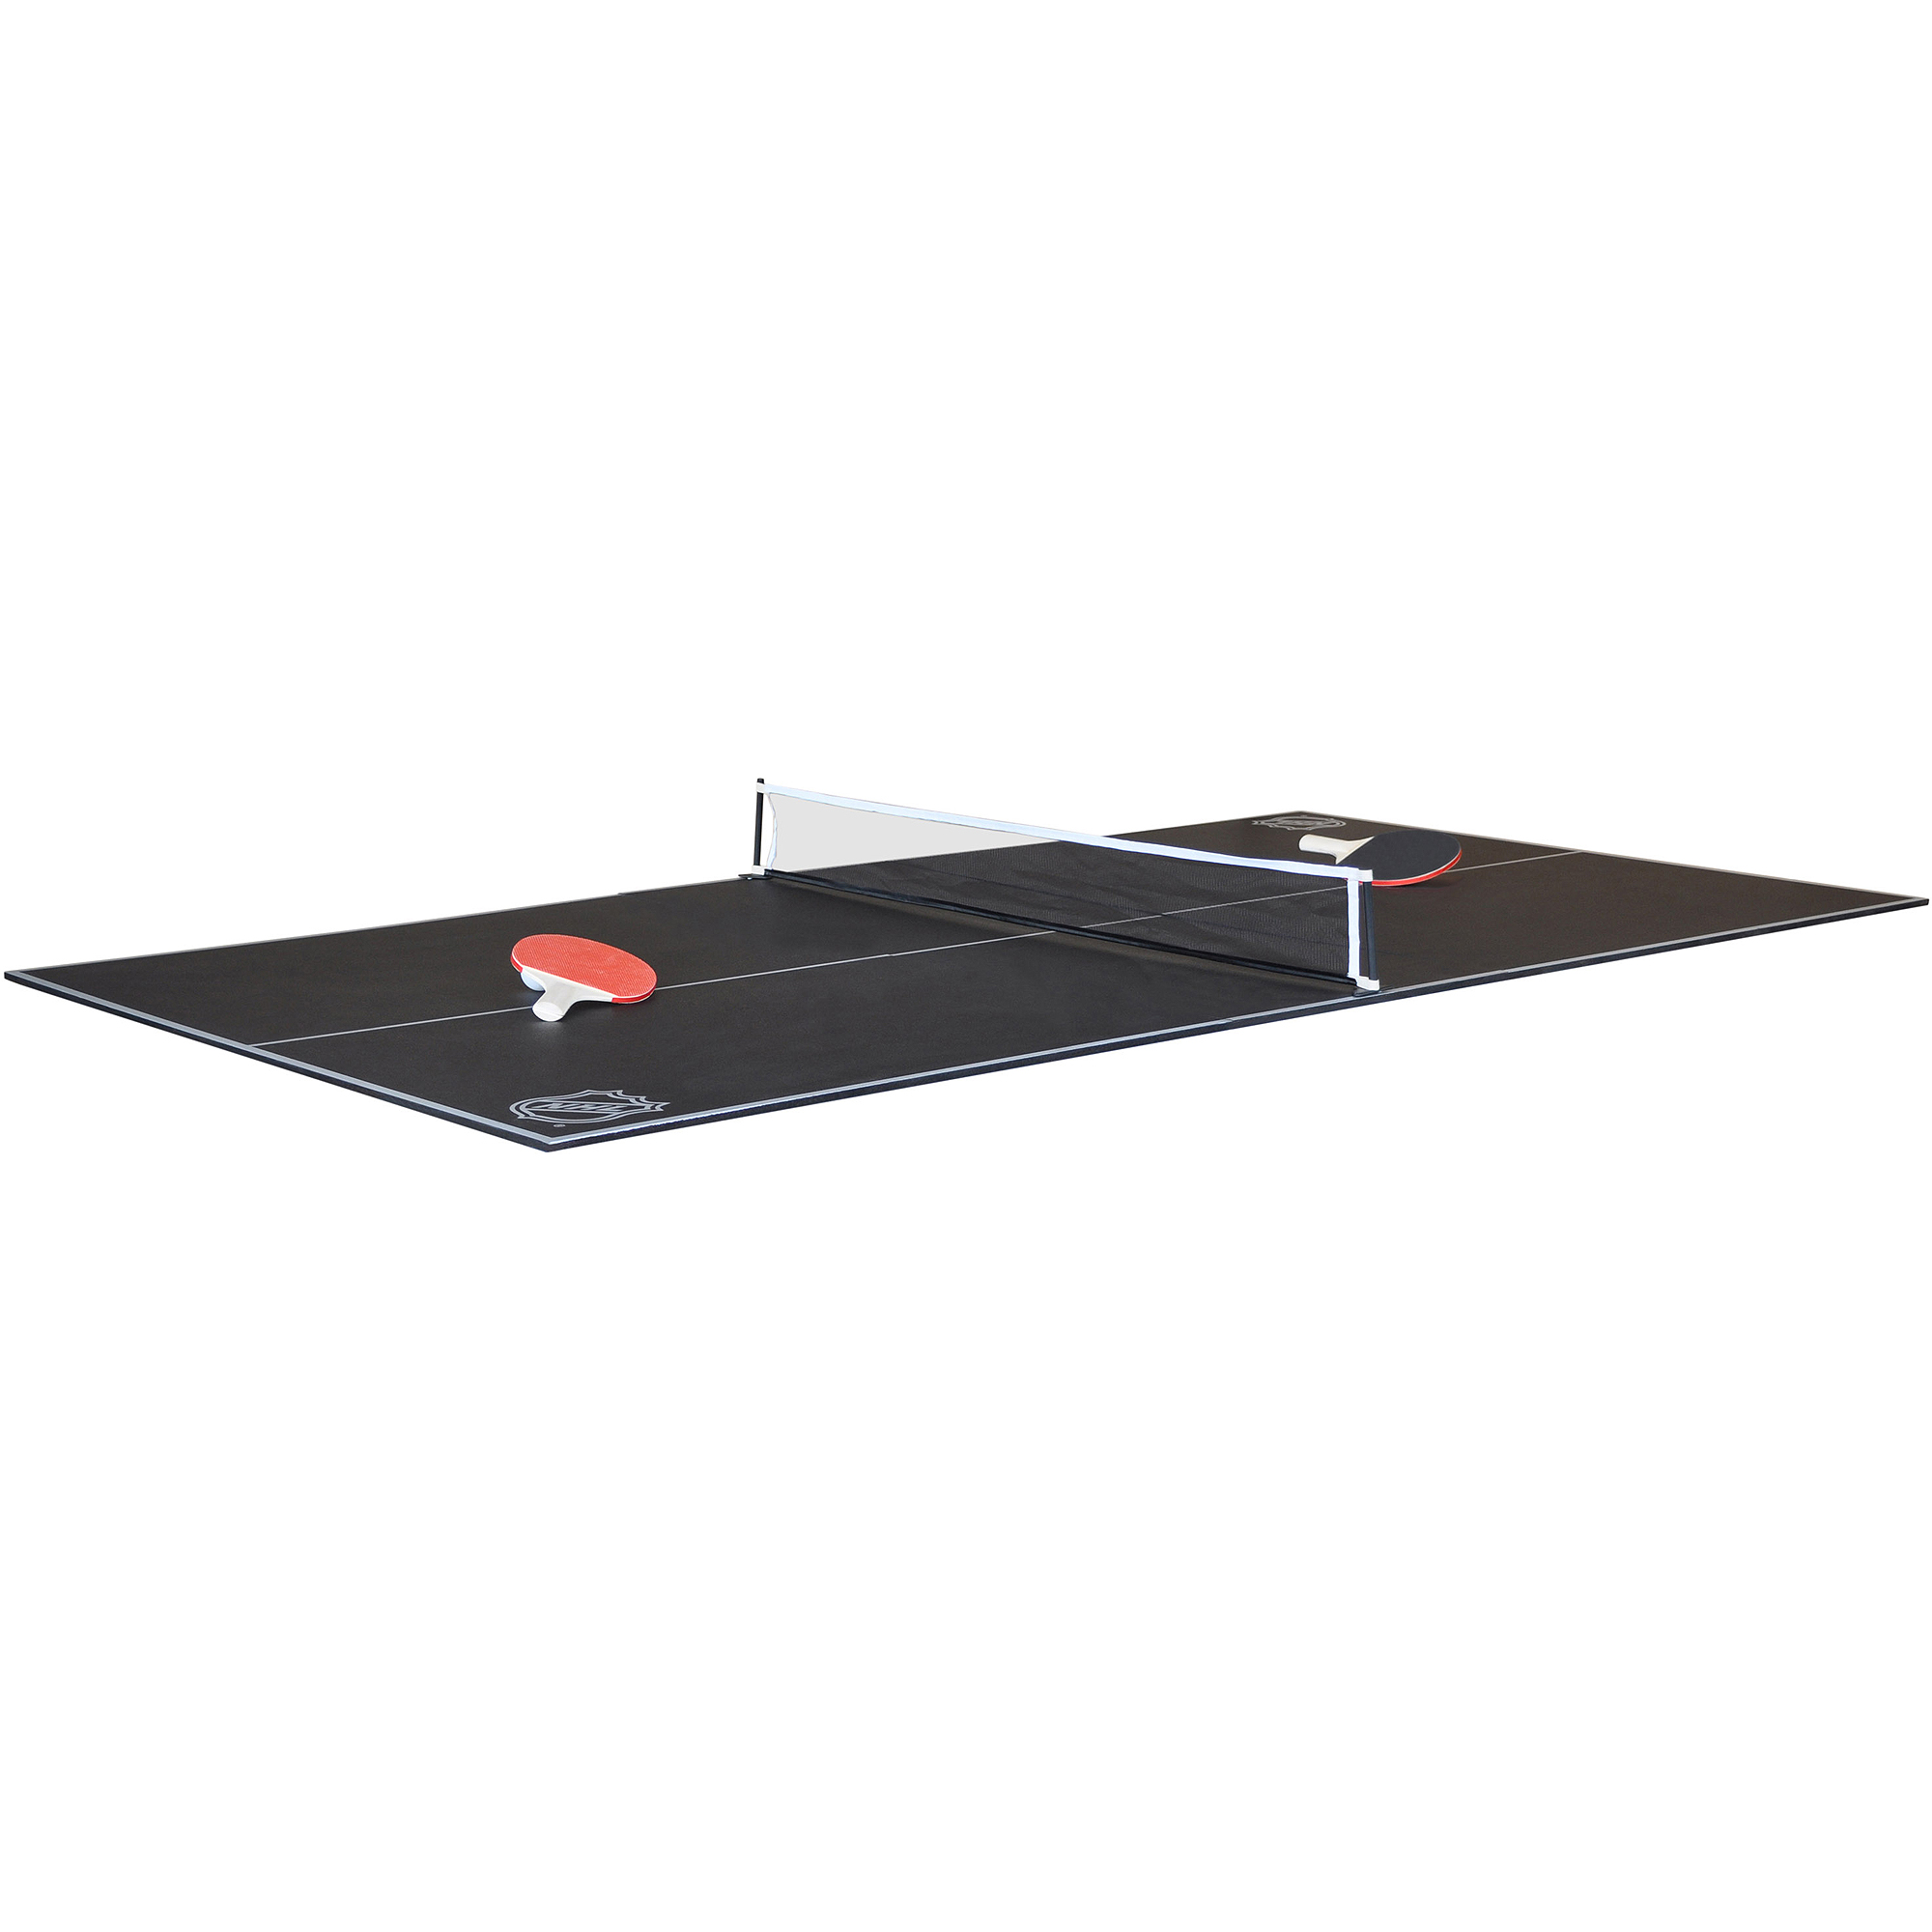 Nhl 80 inch air powered hover hockey table with bonus table tennis nhl 80 inch air powered hover hockey table with bonus table tennis top walmart greentooth Image collections